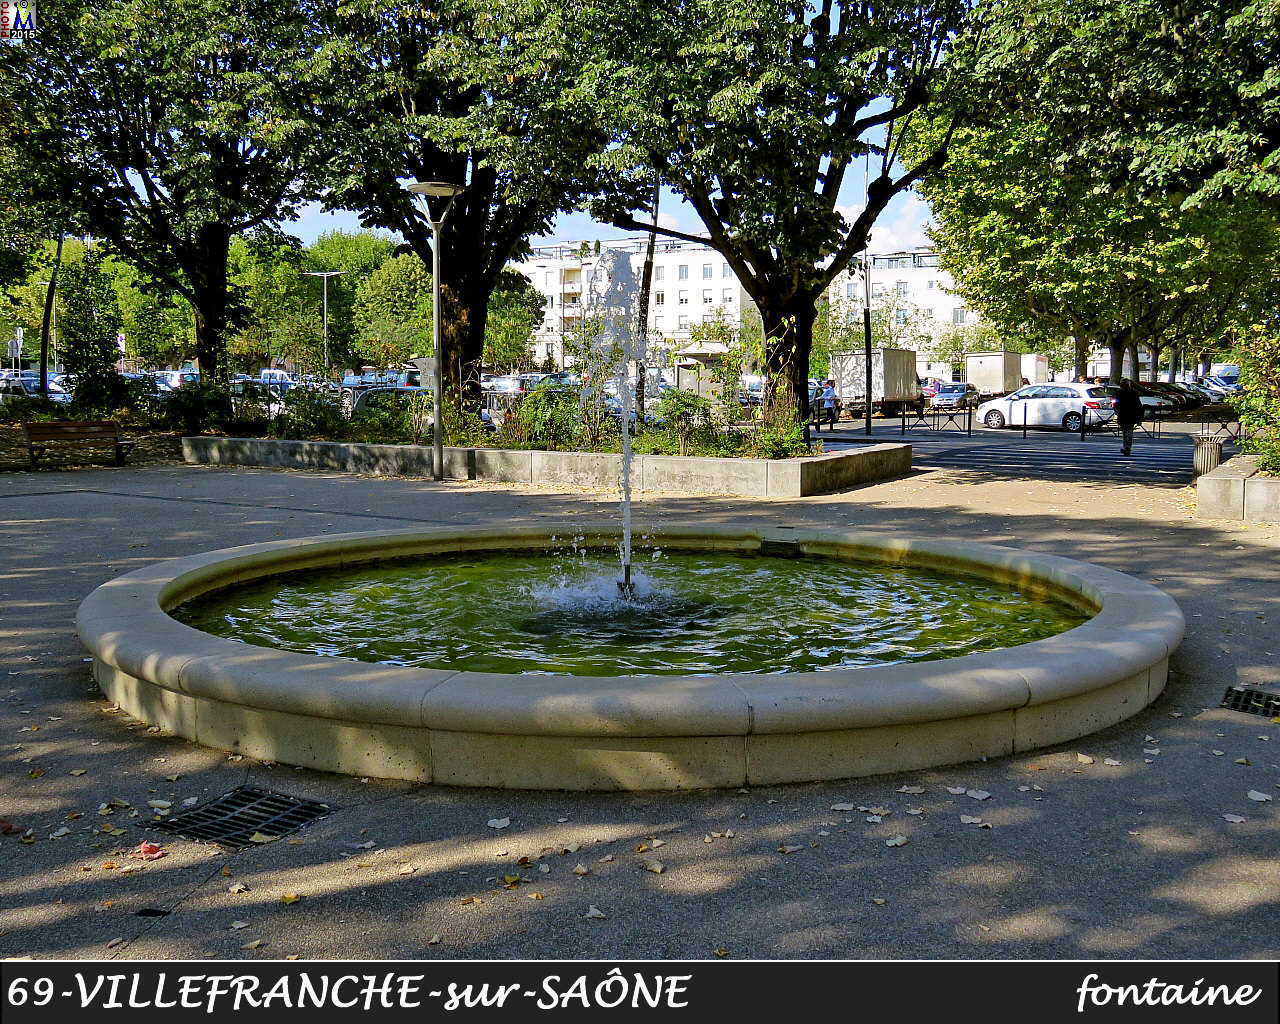 69VILLEFRANCHE-SAONE_fontaine_100.jpg